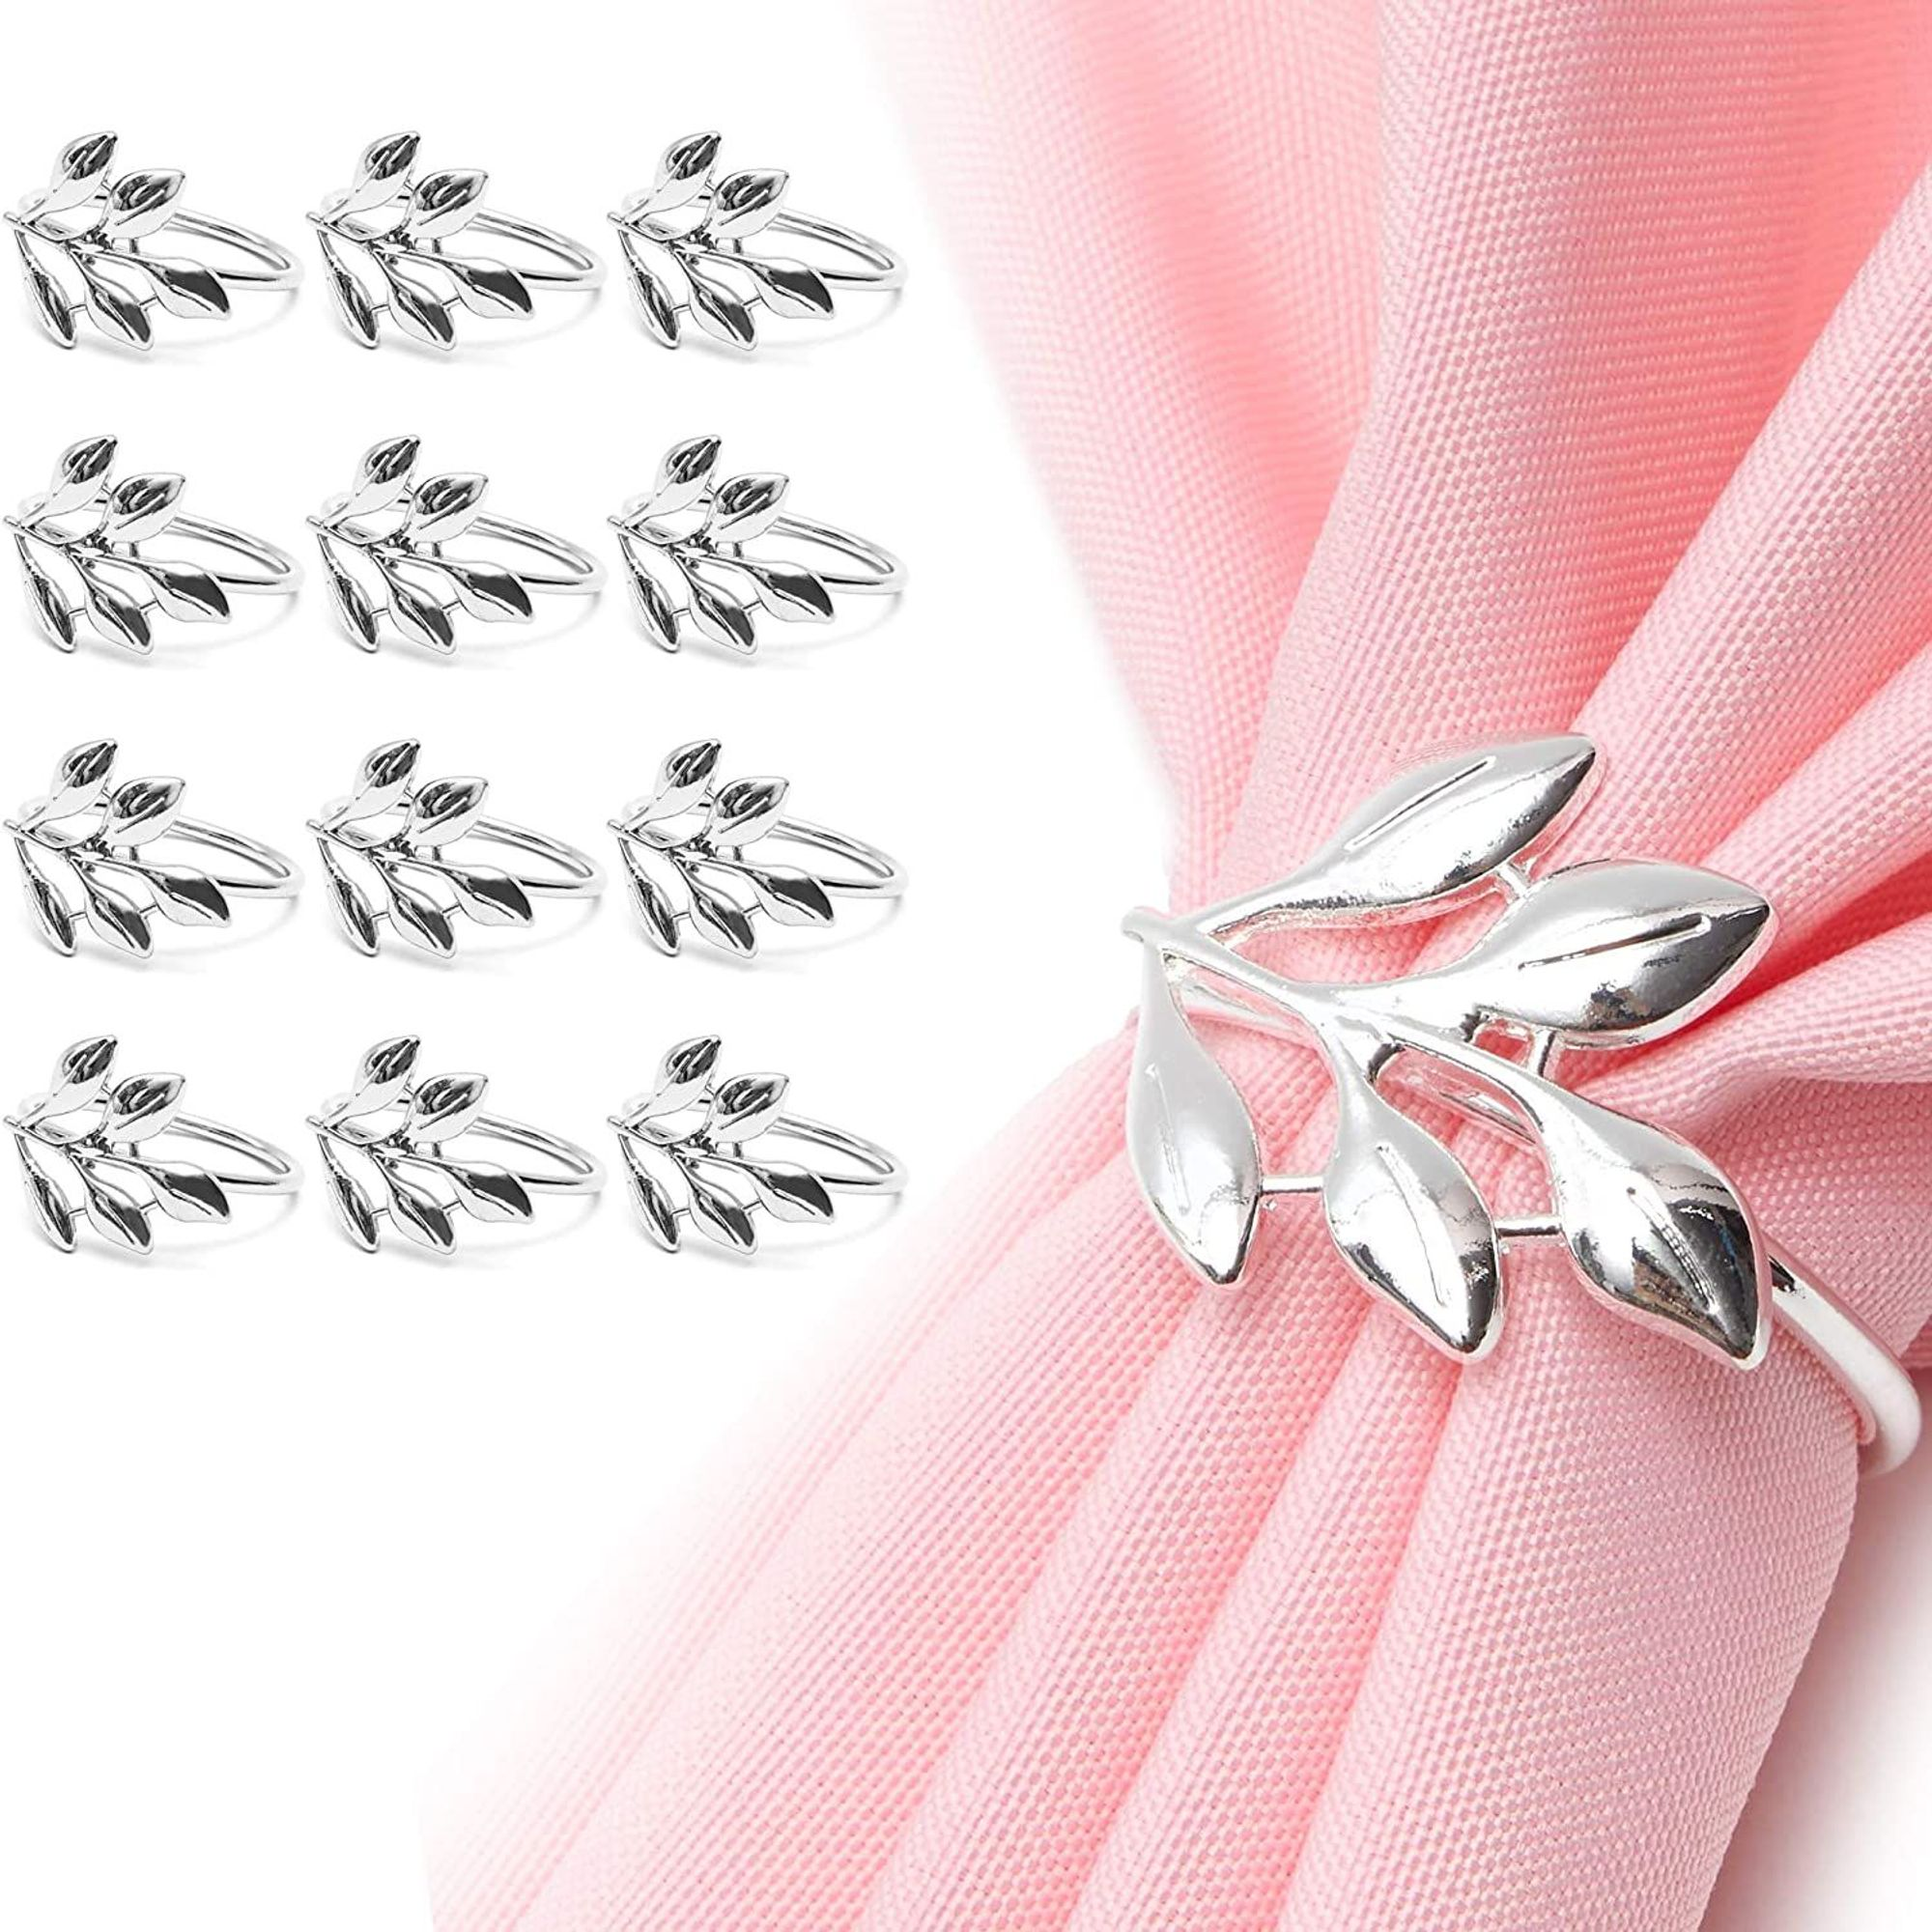 Set Of 12 Metal Leaf Silver Napkin Rings Holder For Dinner Table Wedding Event 1 8 Inches Walmart Com Walmart Com